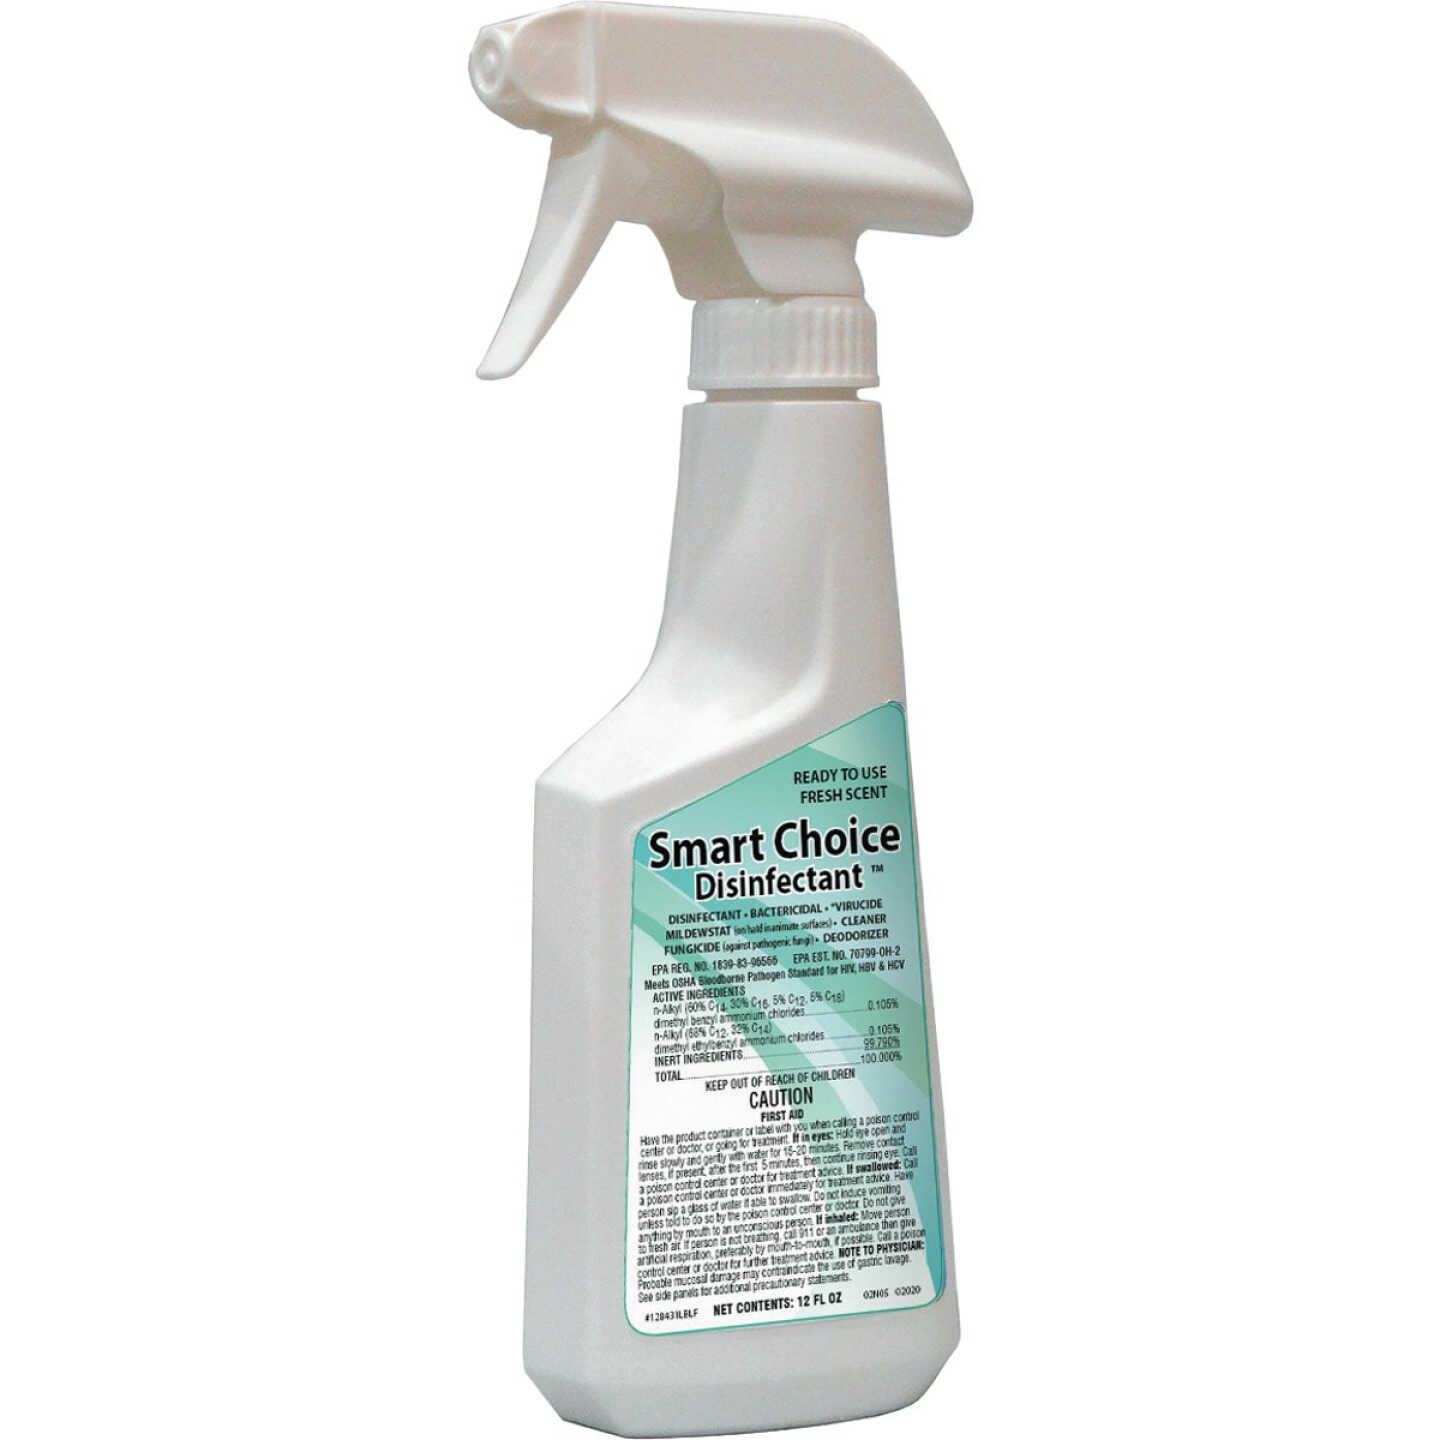 Smart Choice 12 Oz. Disinfectant Cleaner Spray Image 1